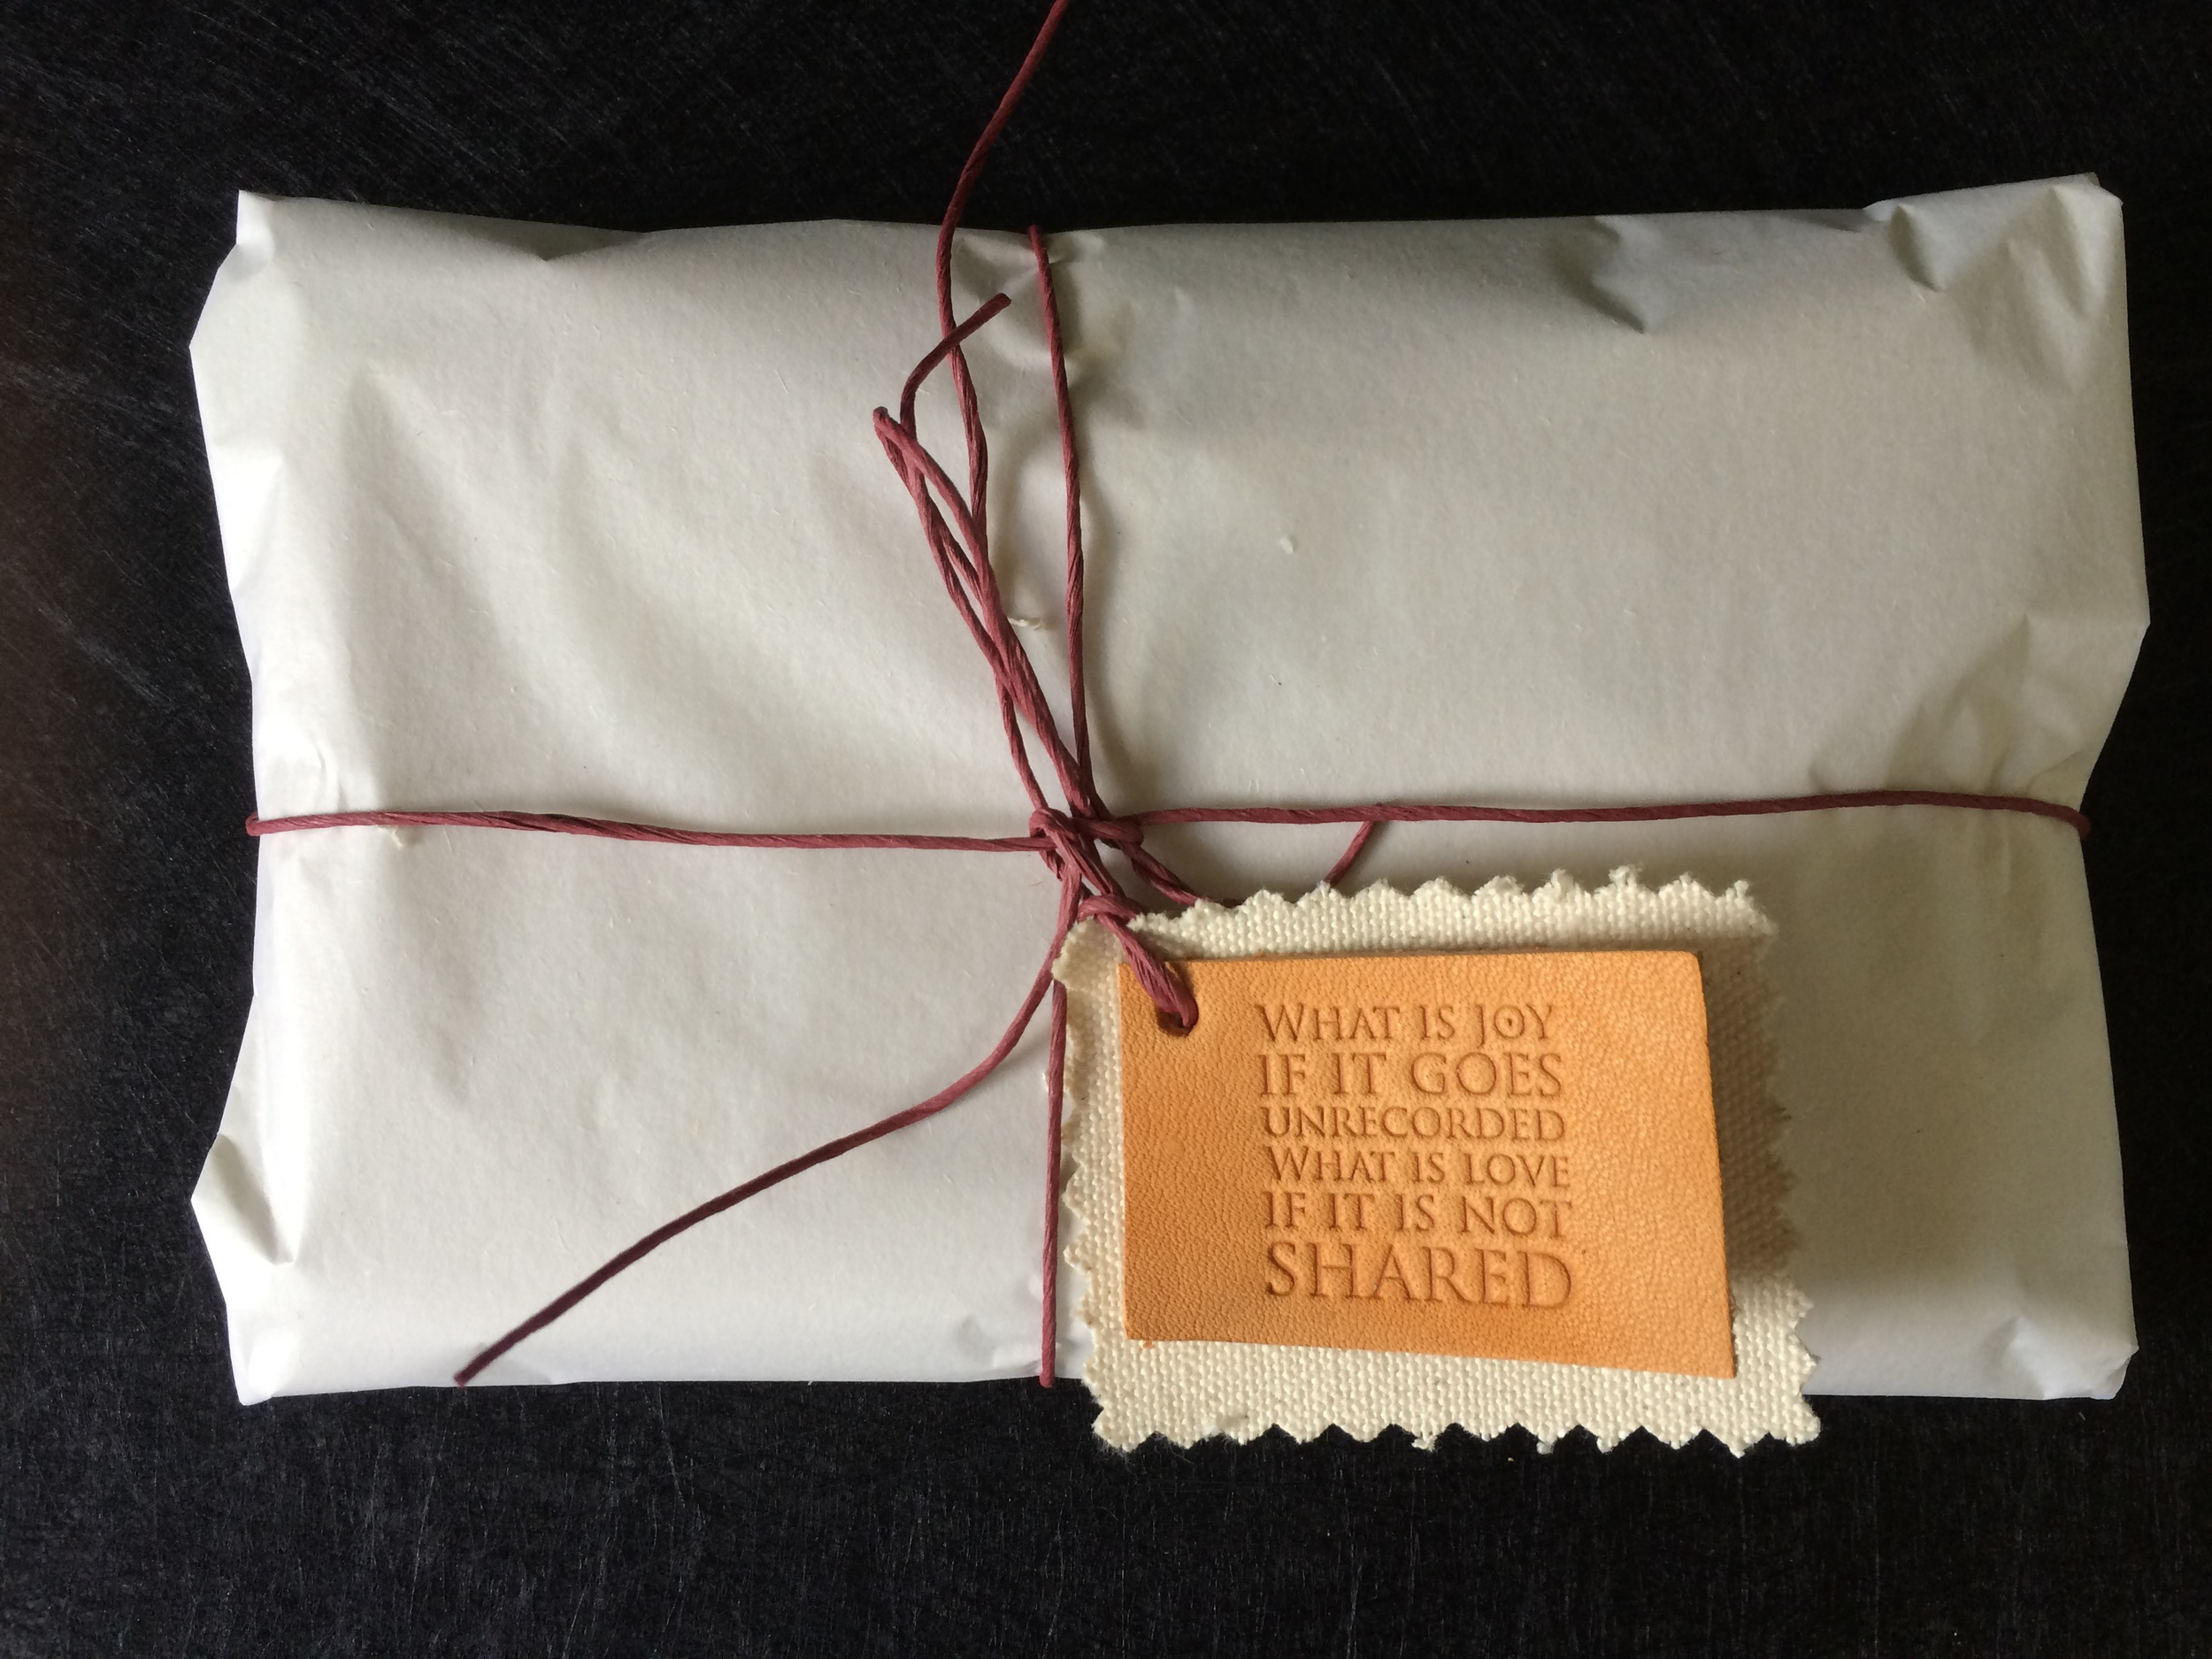 Packaging with quotations  ©FizzArrow